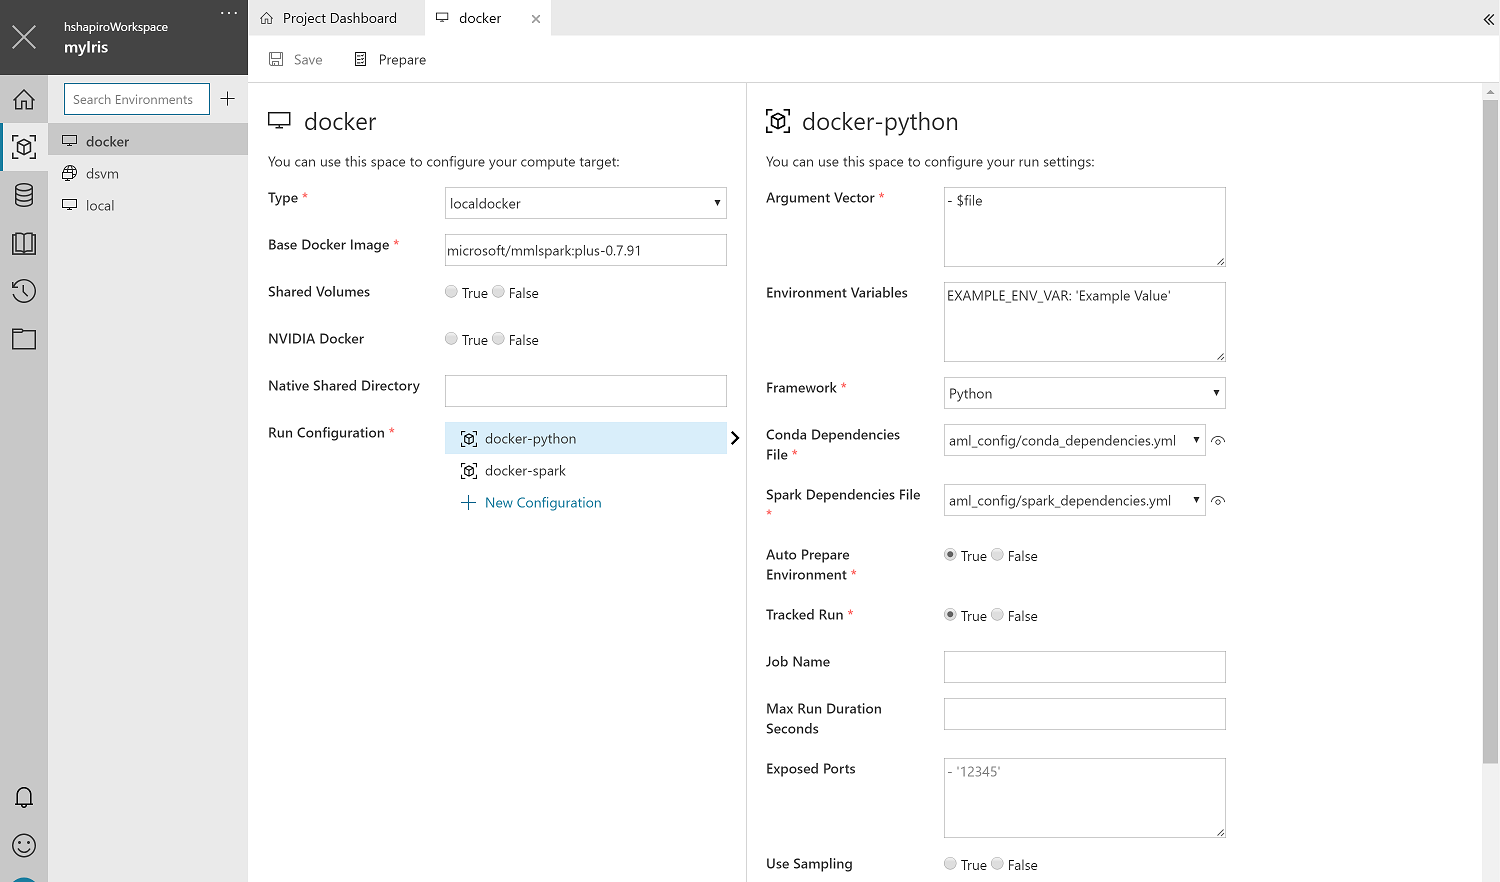 What's new in the release? - Azure Machine Learning service